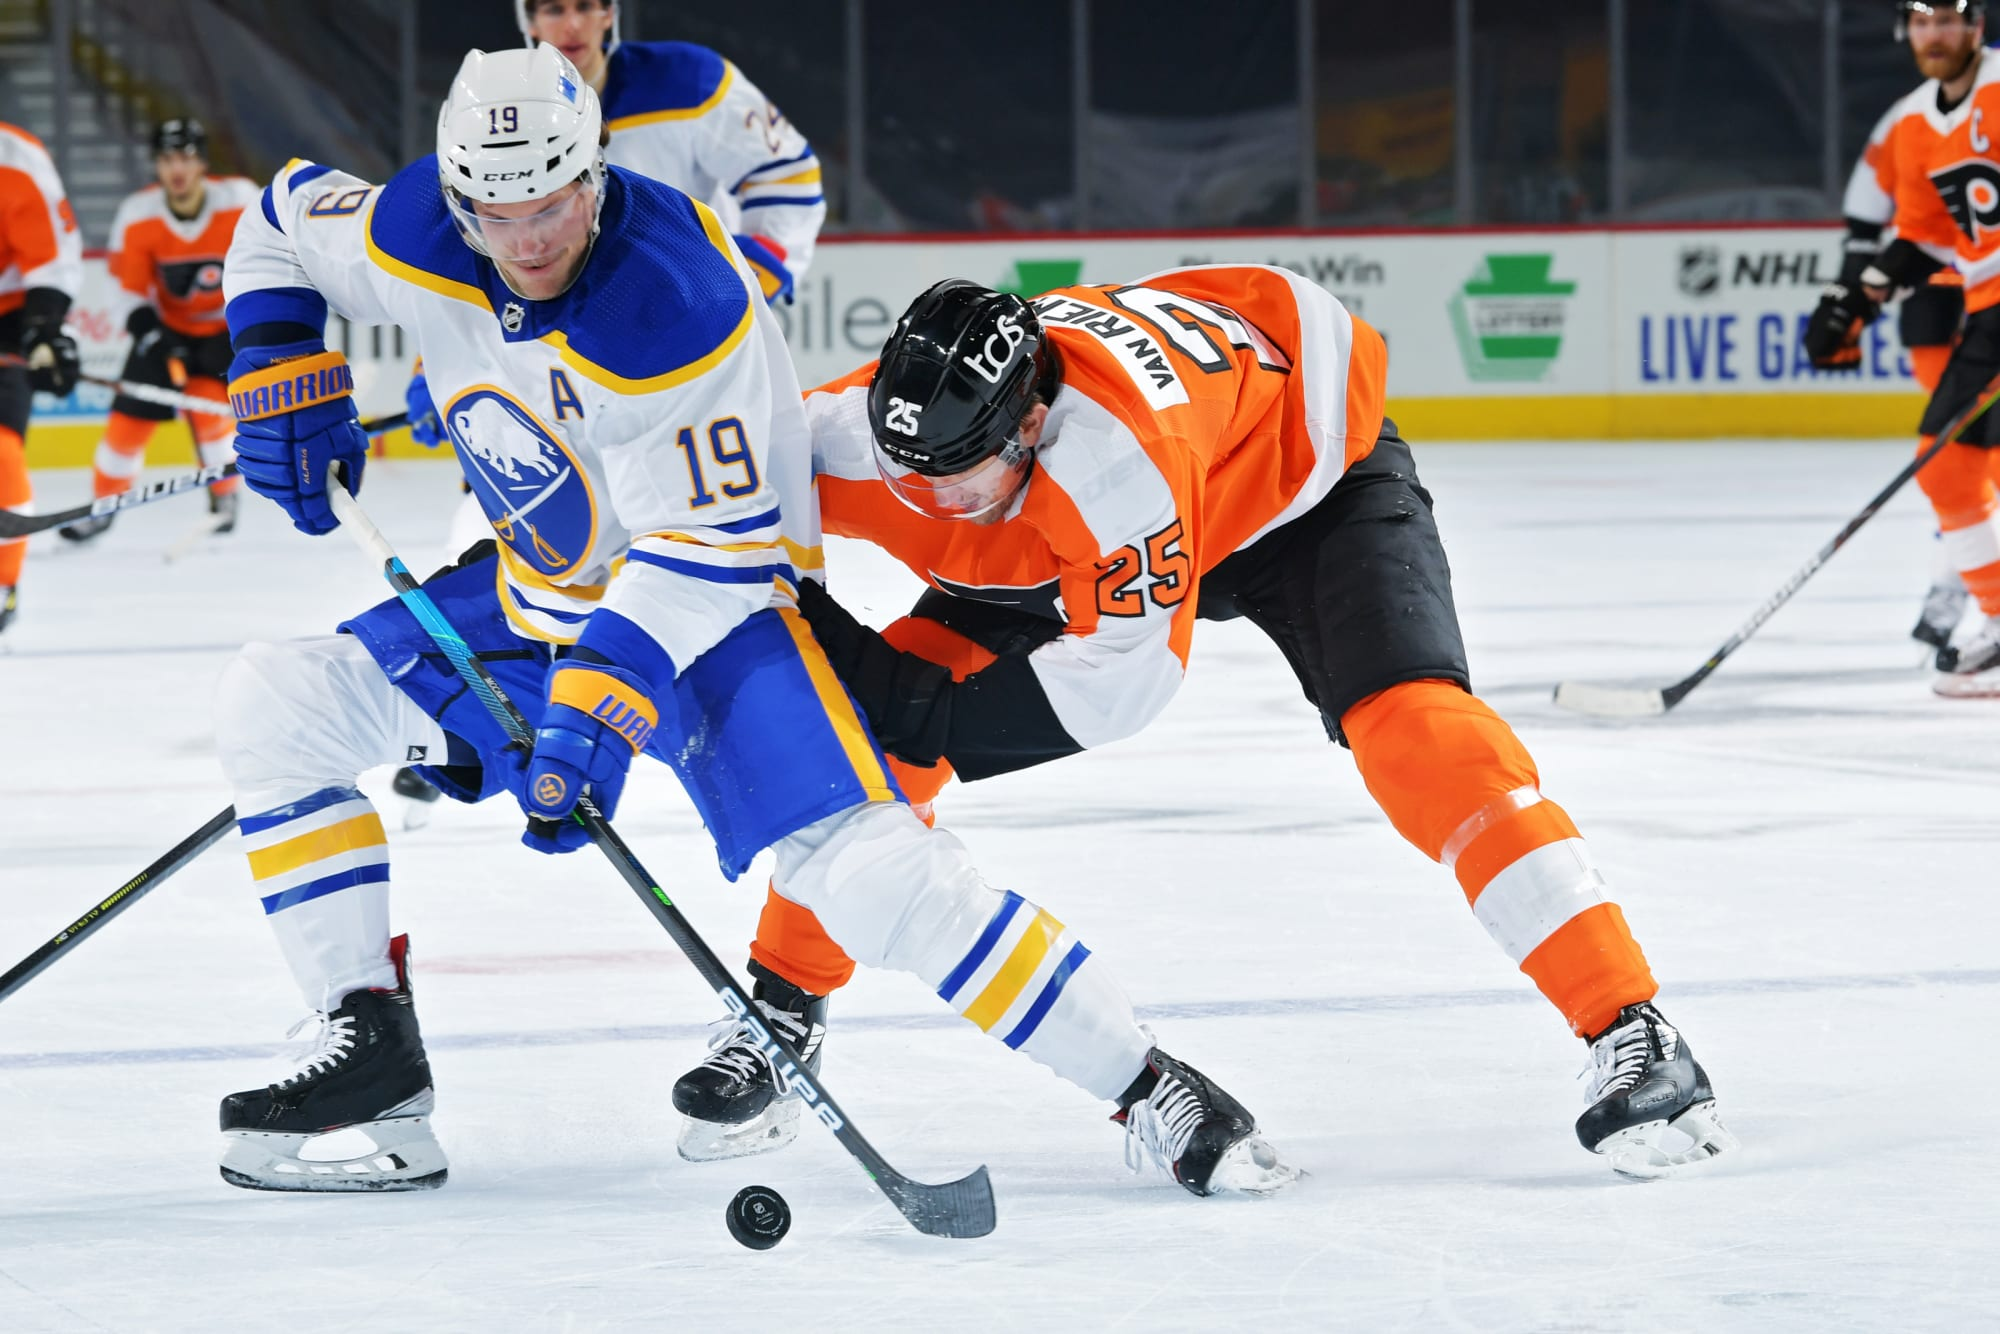 RECAP: Flyers earn first shutout of season, beat Sabres 3-0